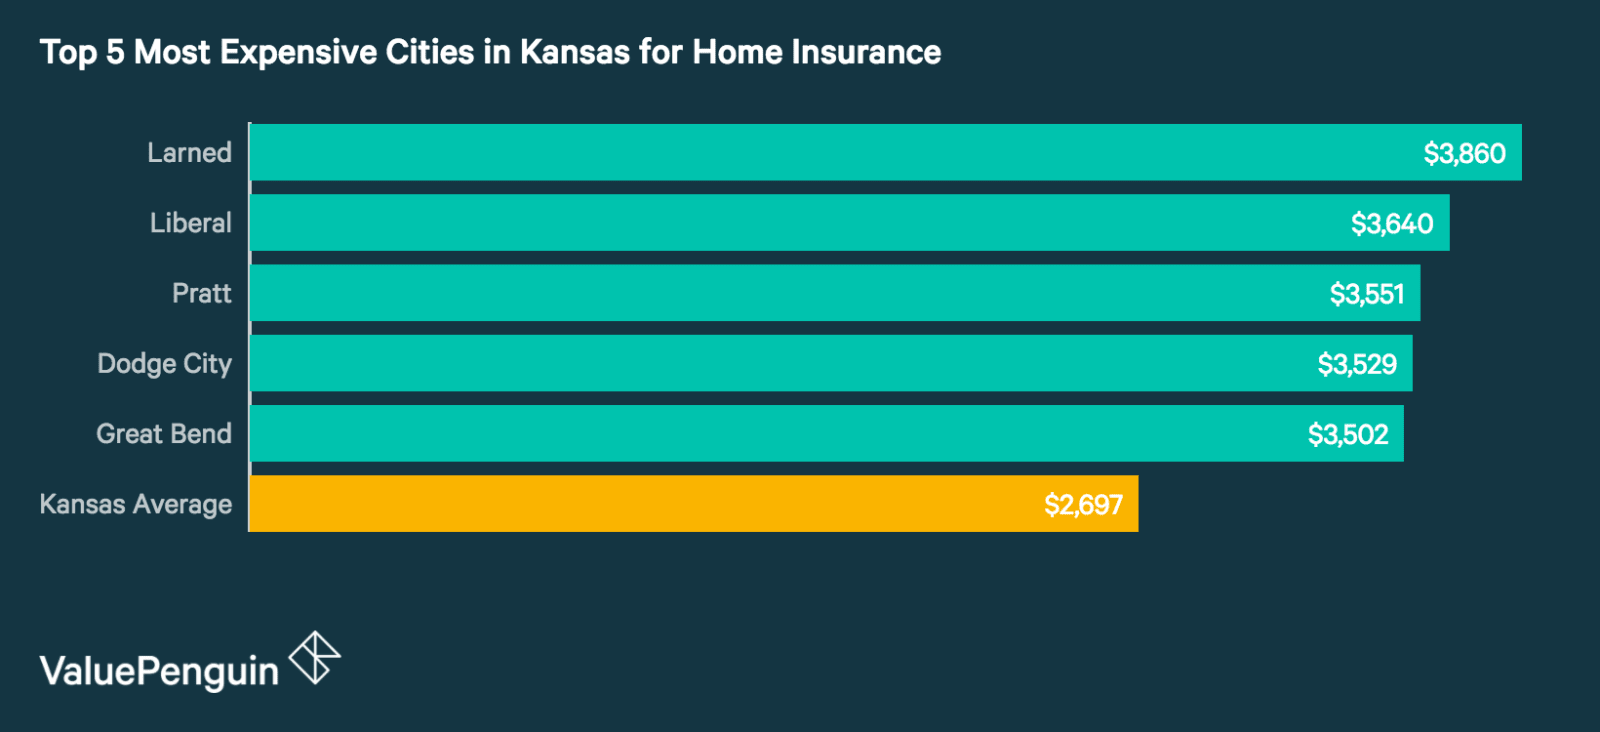 Top 5 Most Expensive Cities in Kansas for Homeowners Insurance